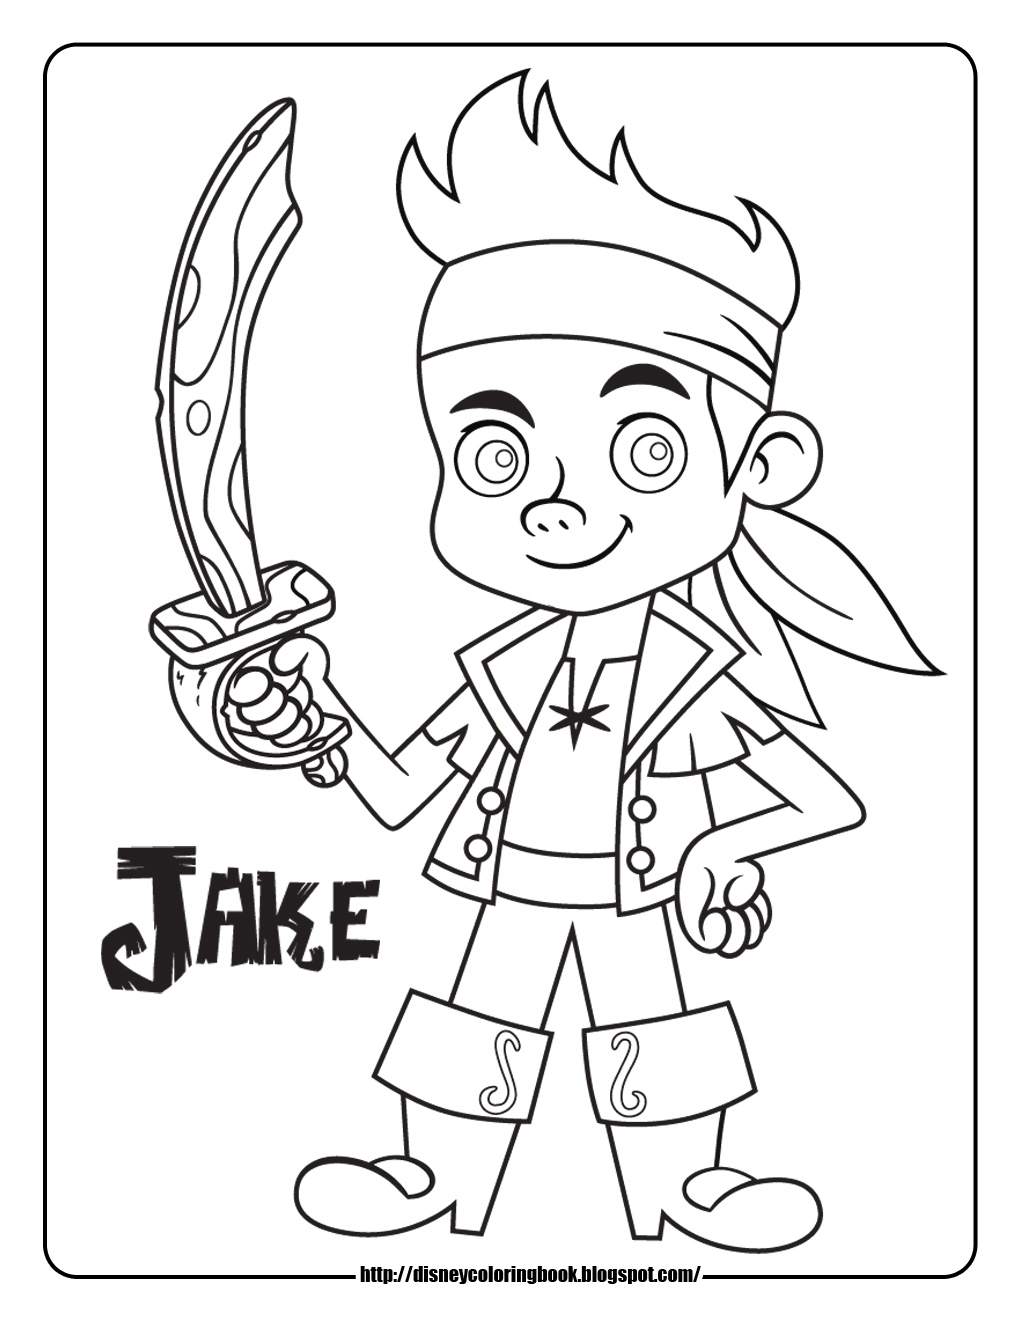 Disney Junior Coloring Pages Jake : Jake and the neverland pirates free disney coloring